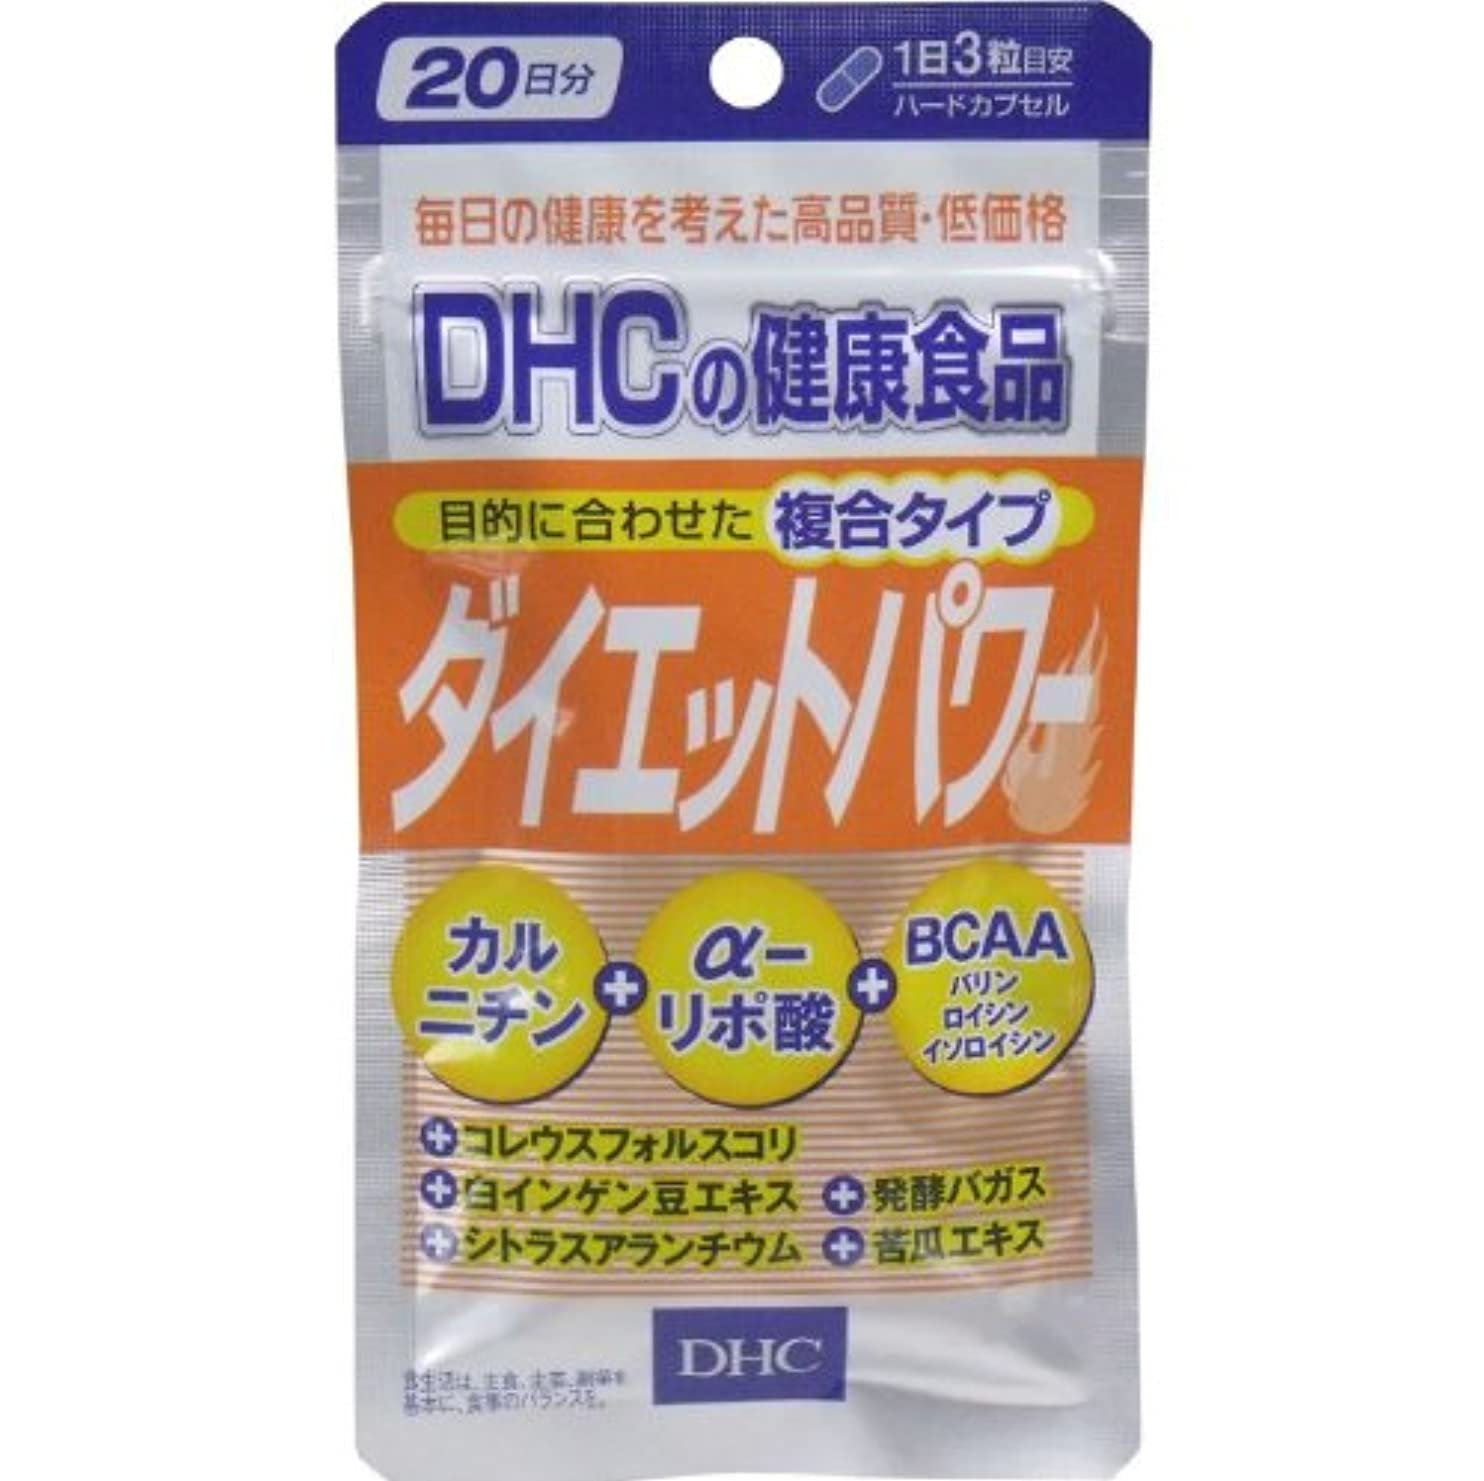 DHC ダイエットパワー 60粒入 20日分「3点セット」